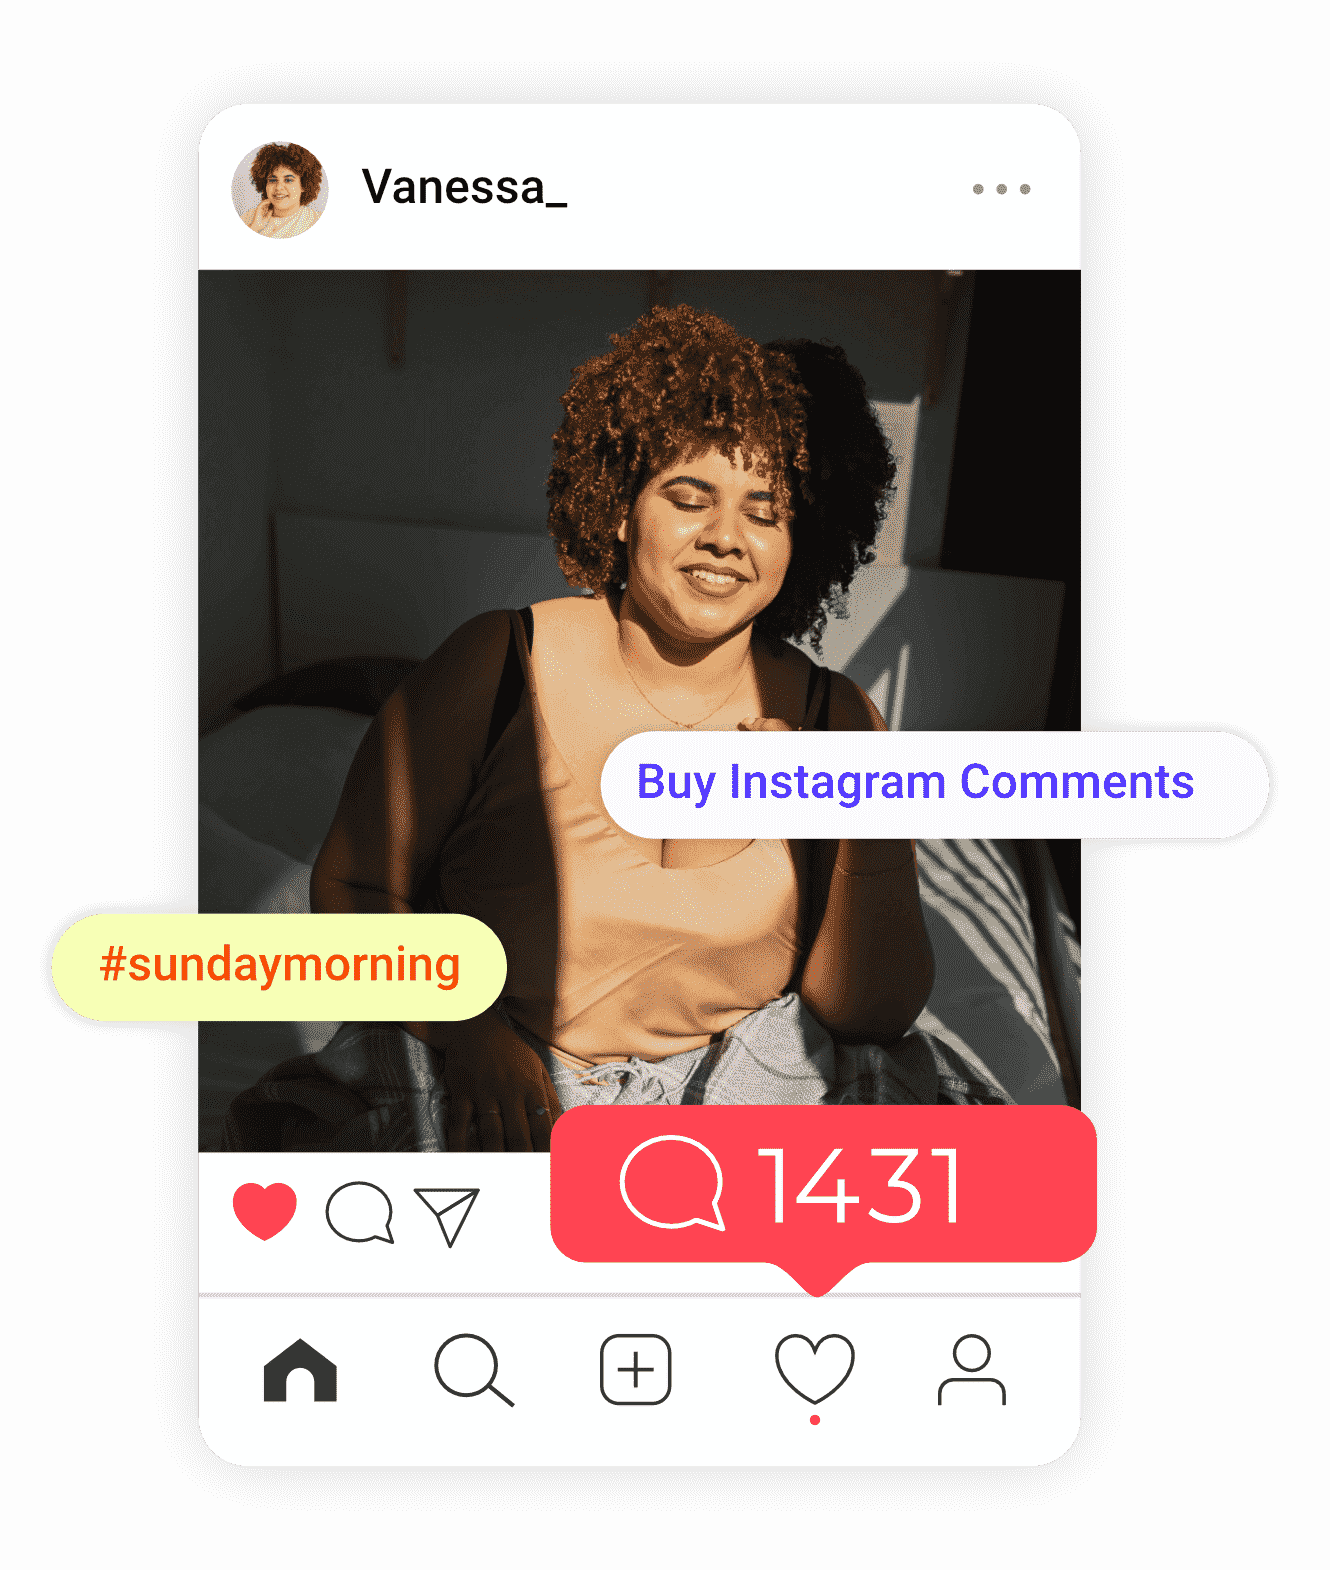 image of instagram comments sold by buysellshoutouts.com